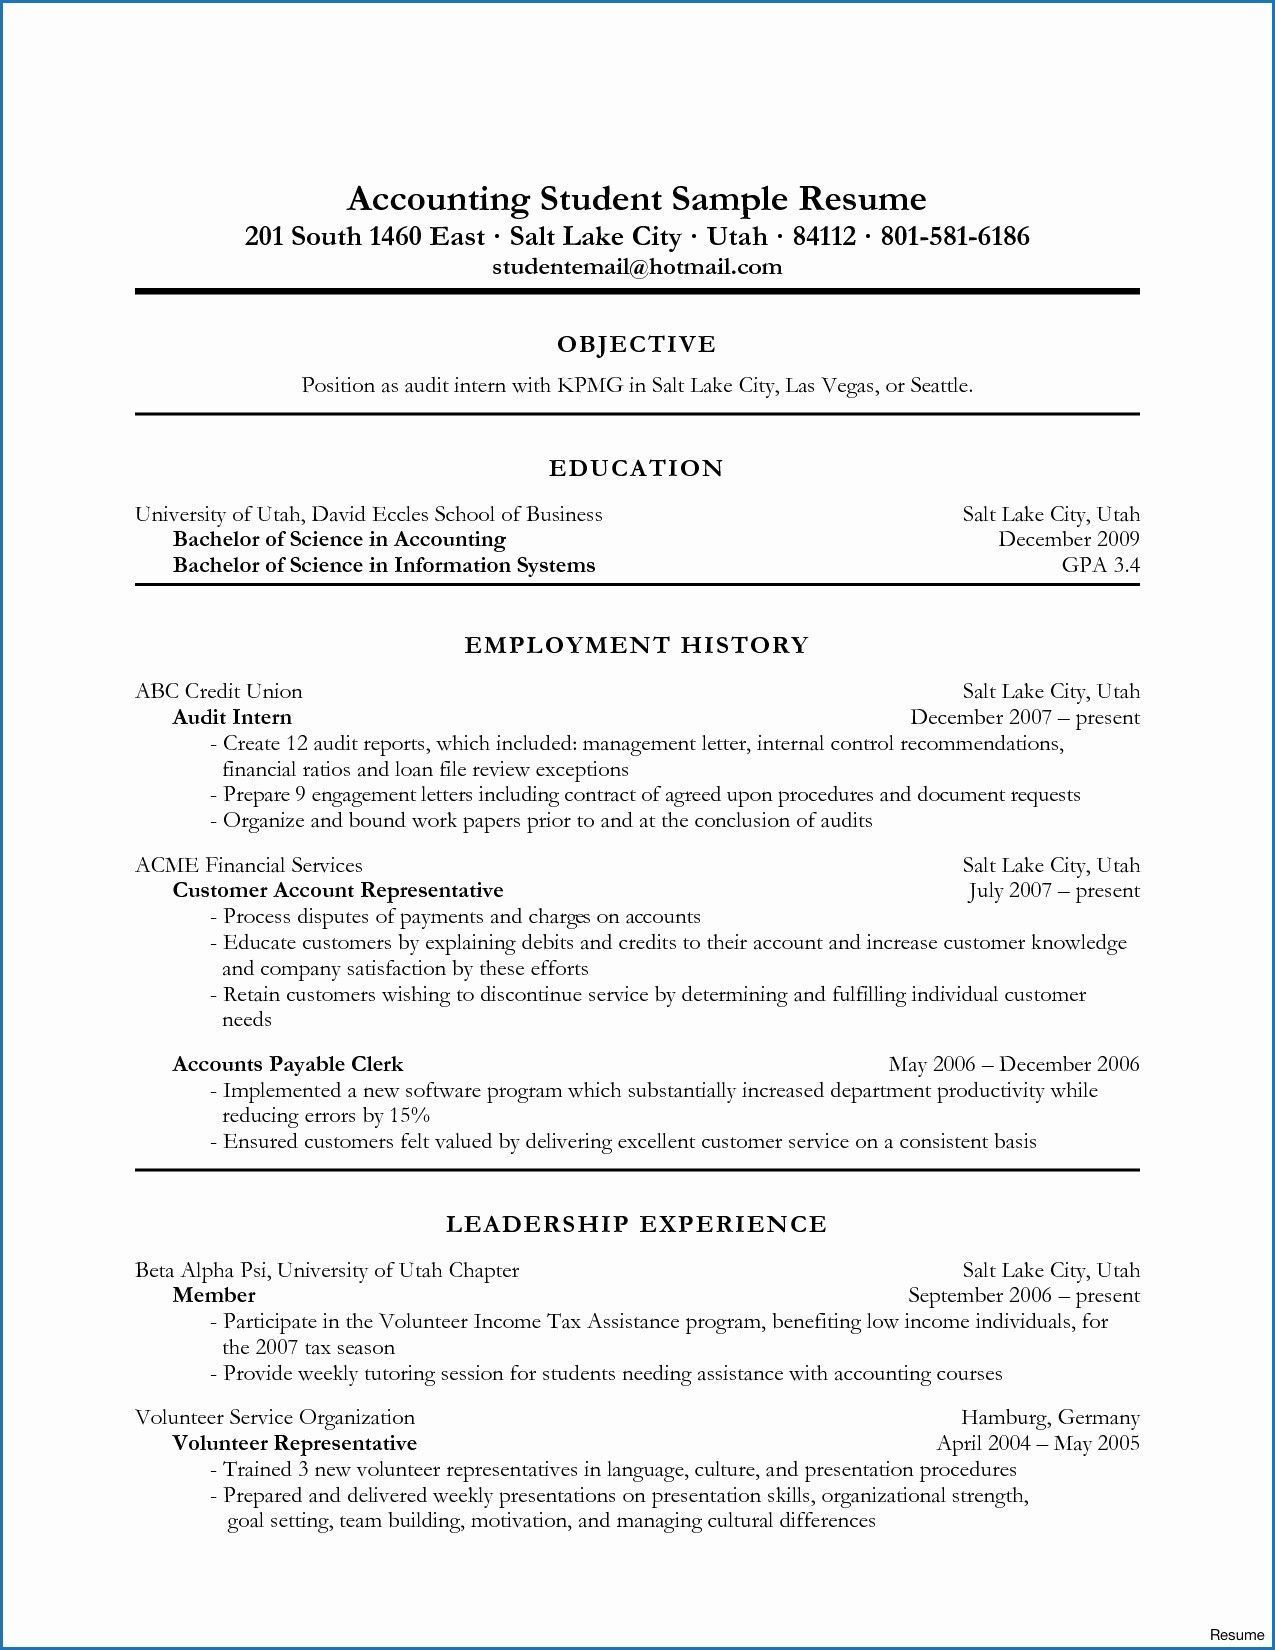 10 Example Resume Accounting Student personalresume in